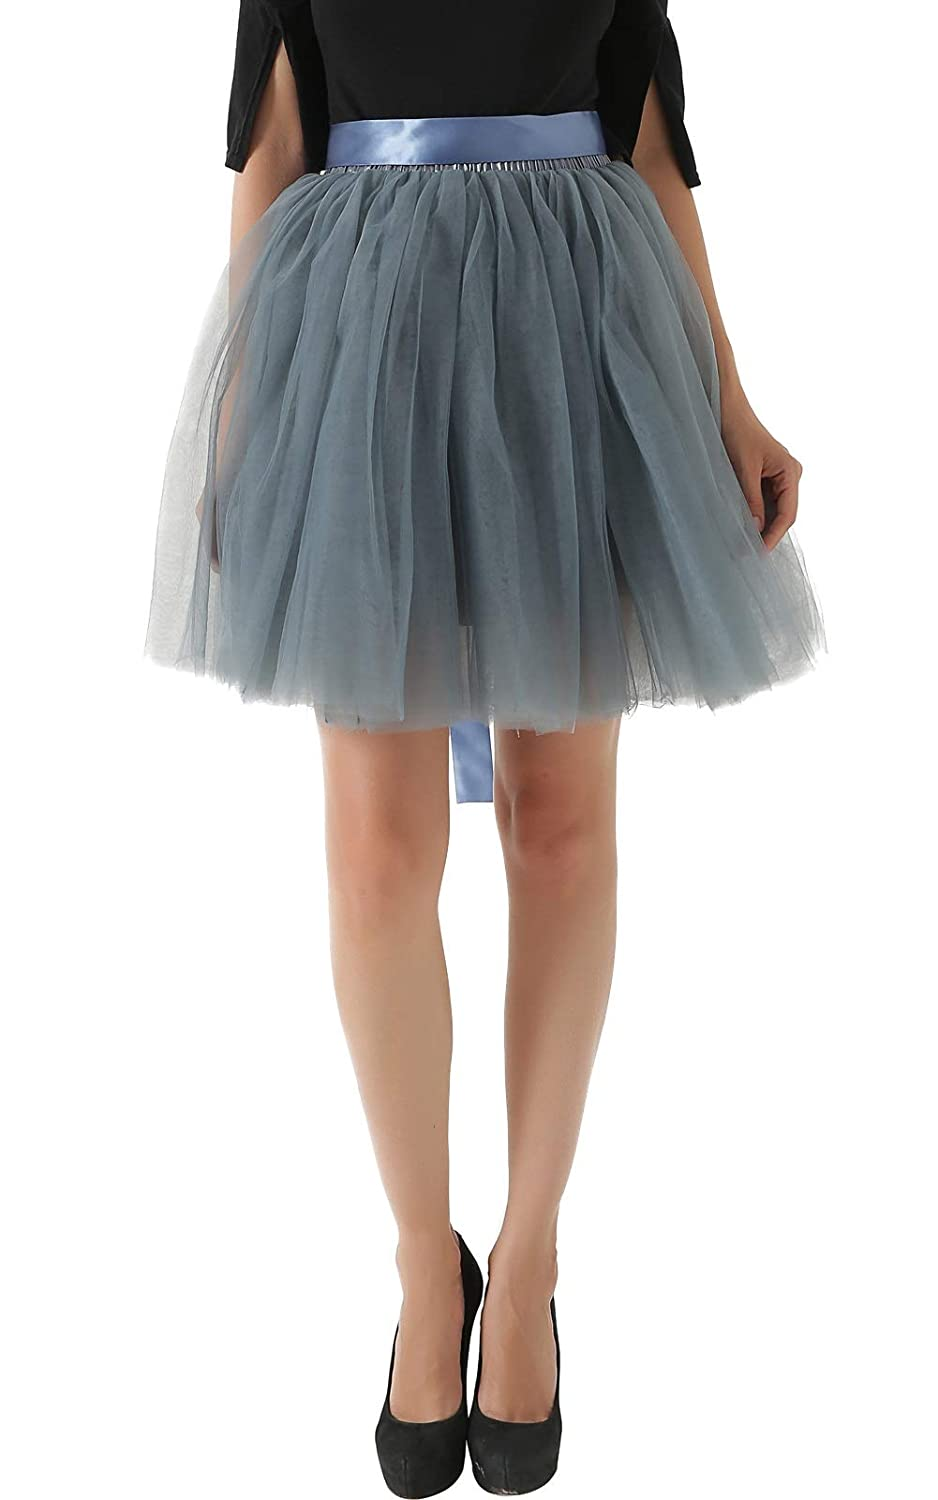 6b2a57b856 Puffy and comfortable A-line skirt above the knee. 7 Layers:Includes 6  layers of tulle and 1 layer of silk lining. Decorative ribbon adjust waist  size.